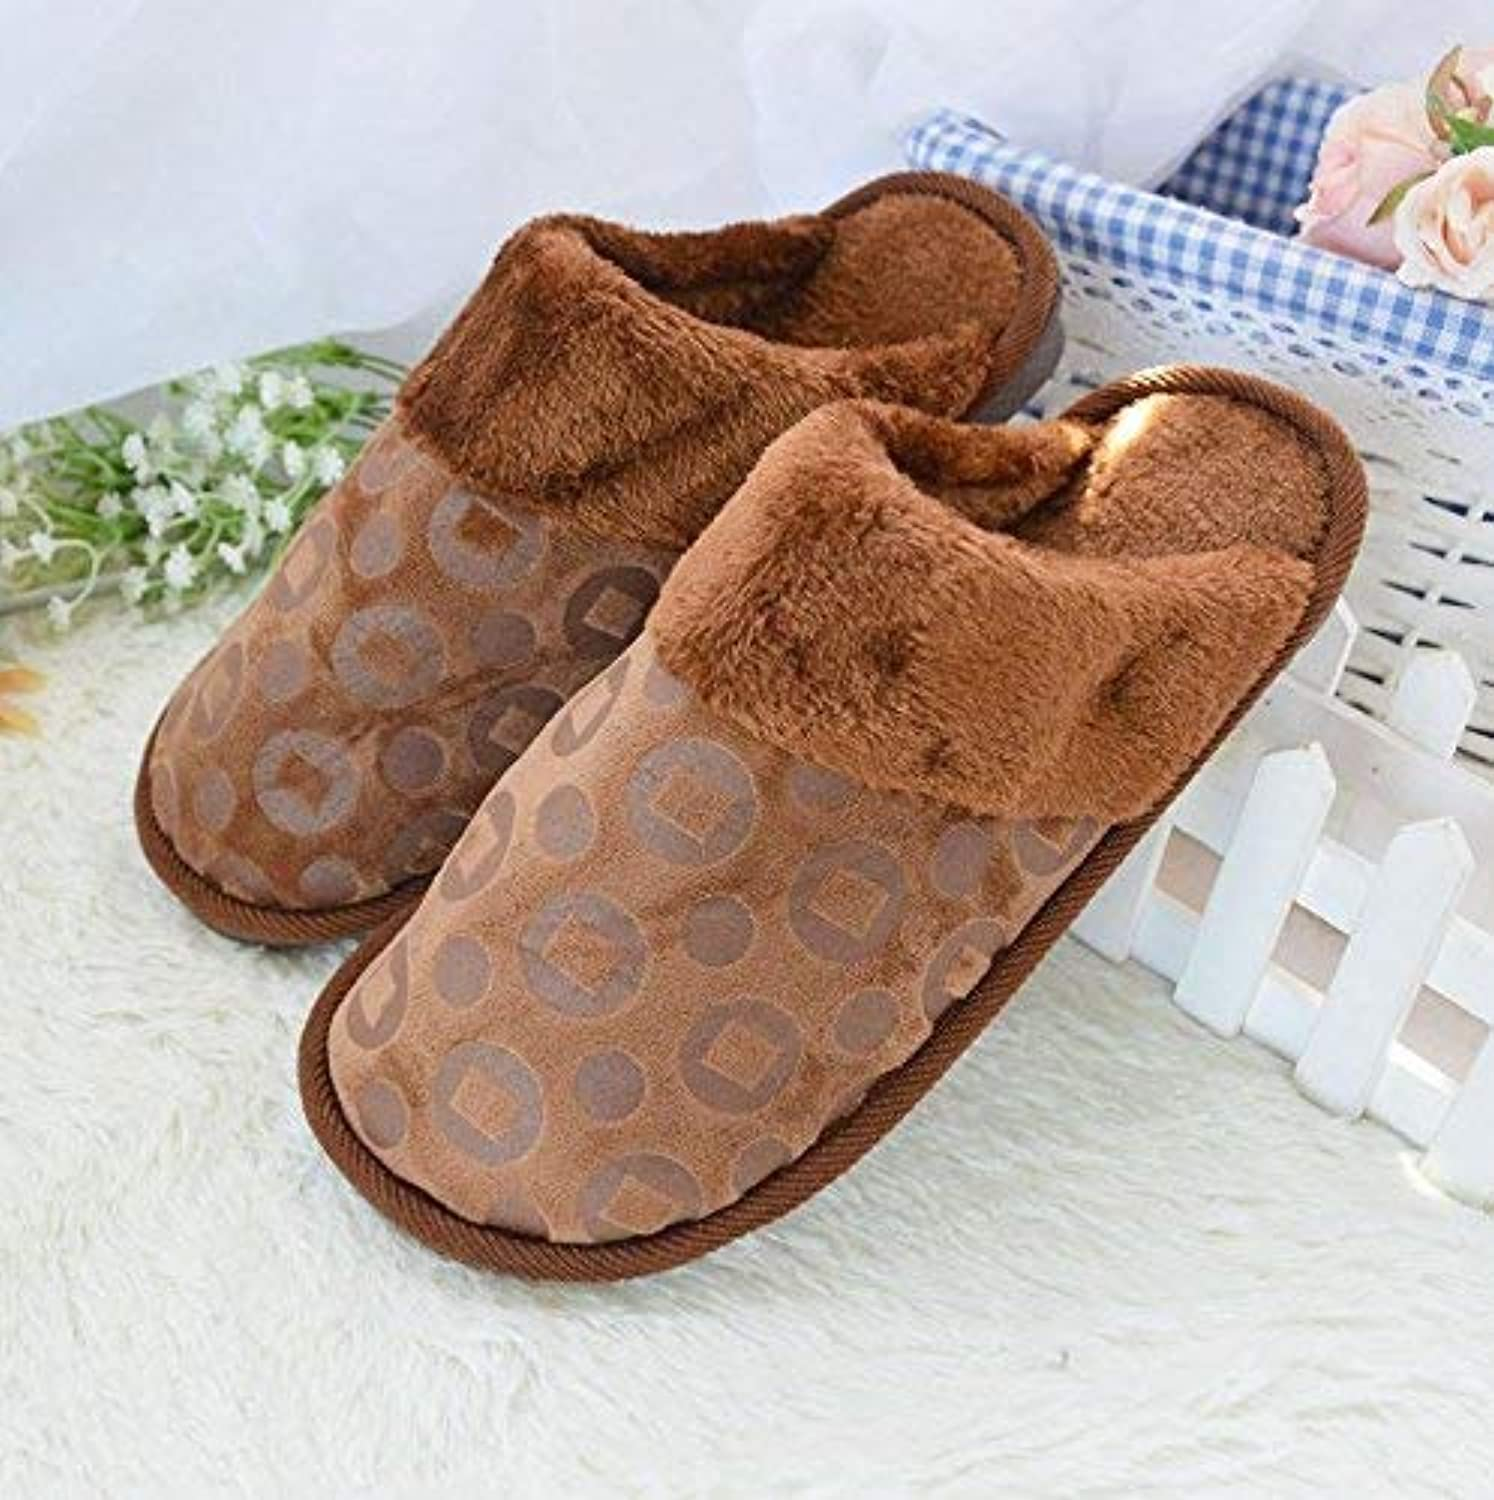 GouuoHi Men Slipper Men 's Home Cotton Slippers Indoor Keep Warm Casual Brown bluee Slippers Soild color Personality Quality for Men